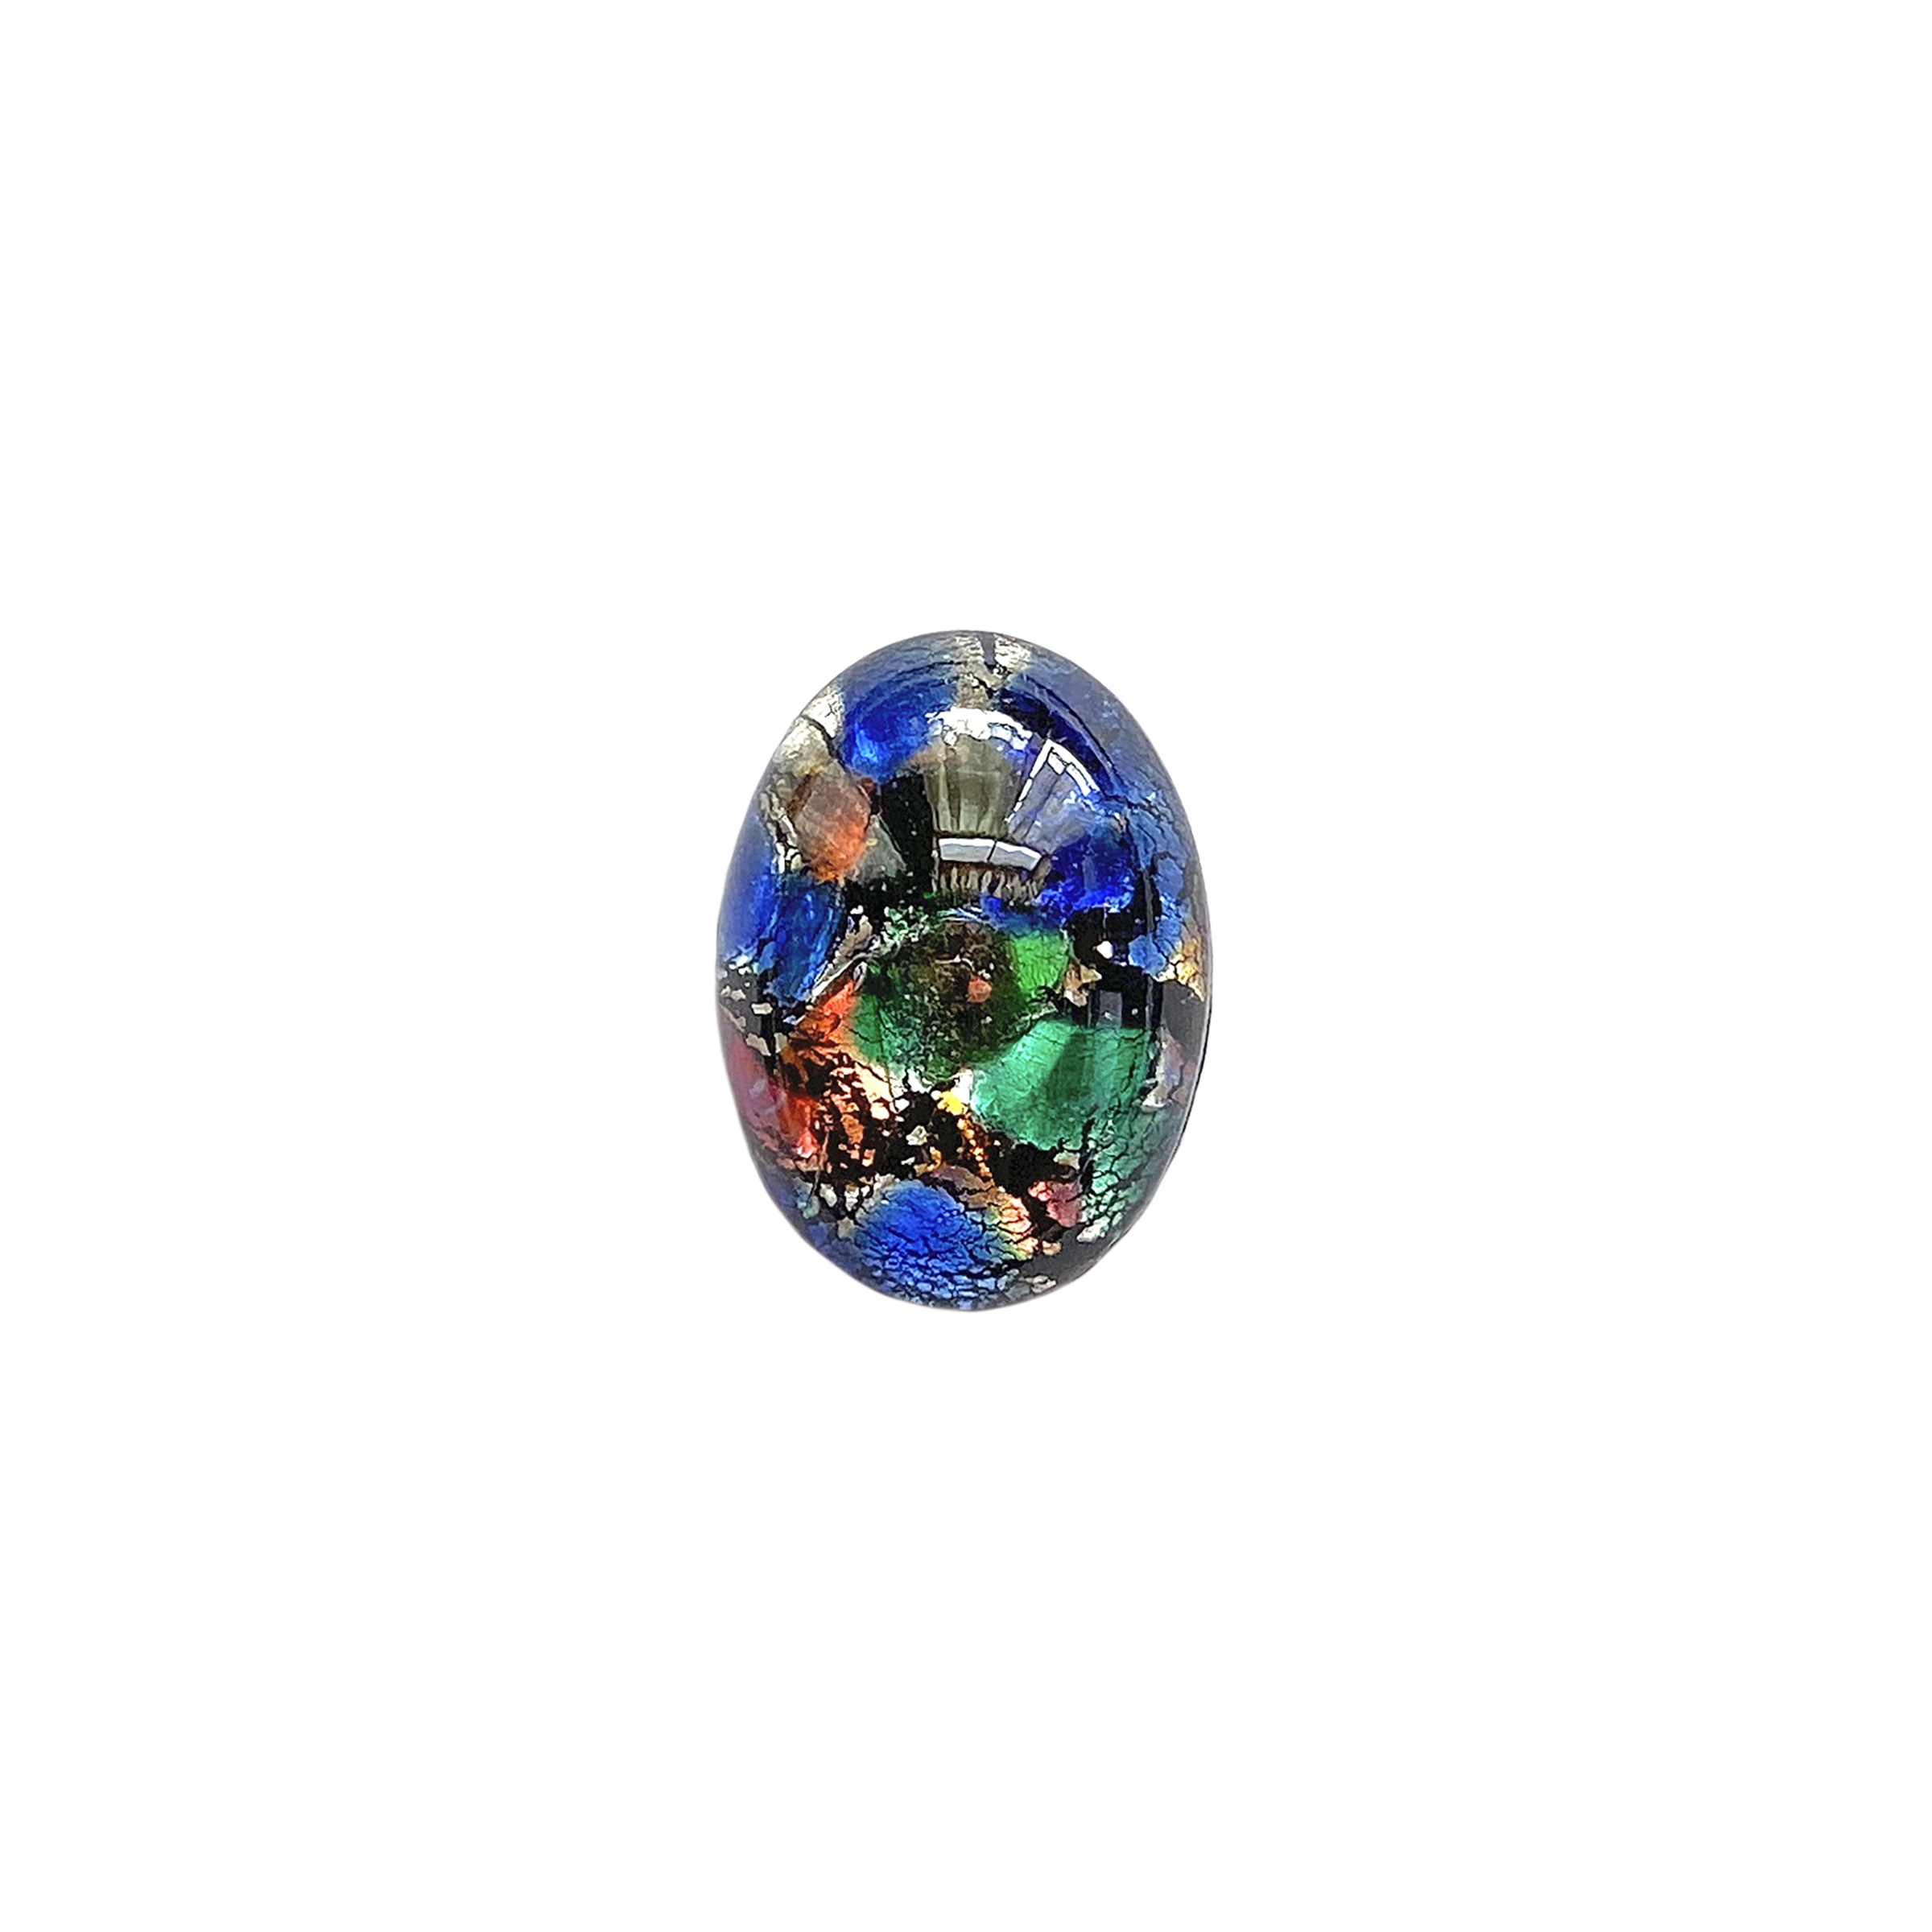 multicolor black opal, Czech, Preciosa, opal, lampwork stone, stone, multicolor black opal stone, oval stone, 18x13mm, simulated imitation, hand-worked glass, glass, glass stone, multicolor, cabochon, B'sue Boutiques, jewelry stone, jewelry making, 01409